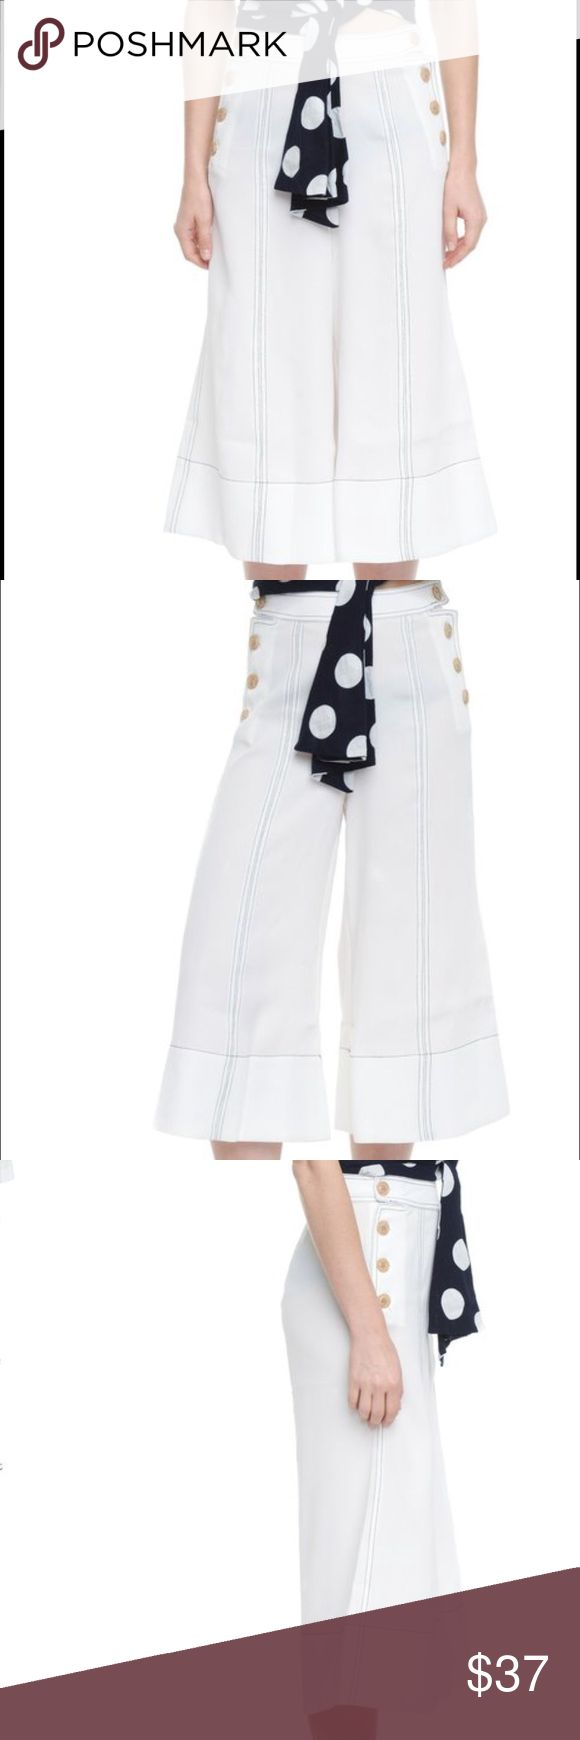 culottes style pants with contrast stitching Loose and easy midi culottes-style pants with contrast stitching. Functioning sailor-style buttons along pockets. Mid-weight fabric has a viscose texture. Fits loose and slightly below natural waist. Unlined. Style Mafia Pants Wide Leg